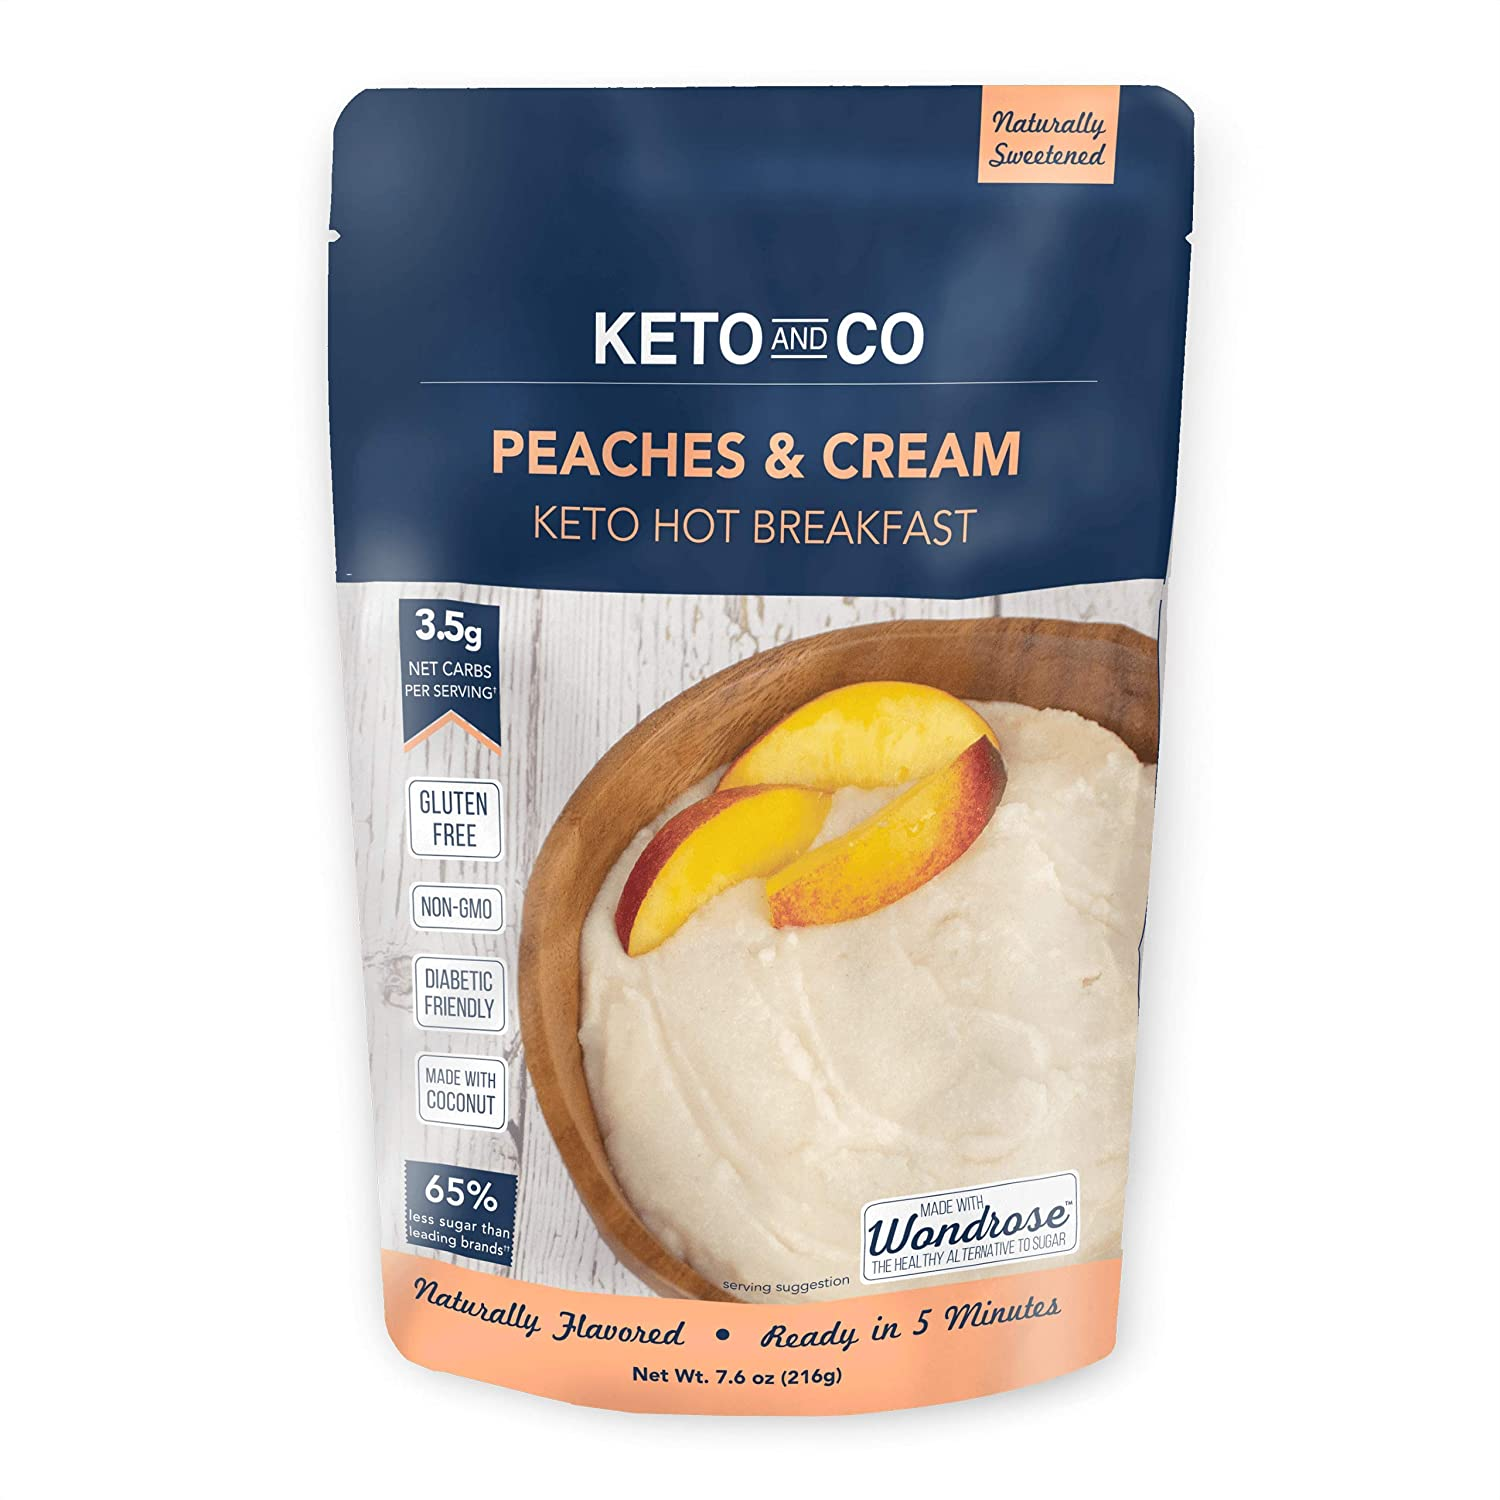 Keto Hot Breakfast by Keto and Co   Peaches and Cream Flavor   Just 3.5 Net Carbs Per Serving   Gluten Free, Low Carb, No Added Sugar, Naturally Sweetened   (8 Servings - Peaches and Cream)